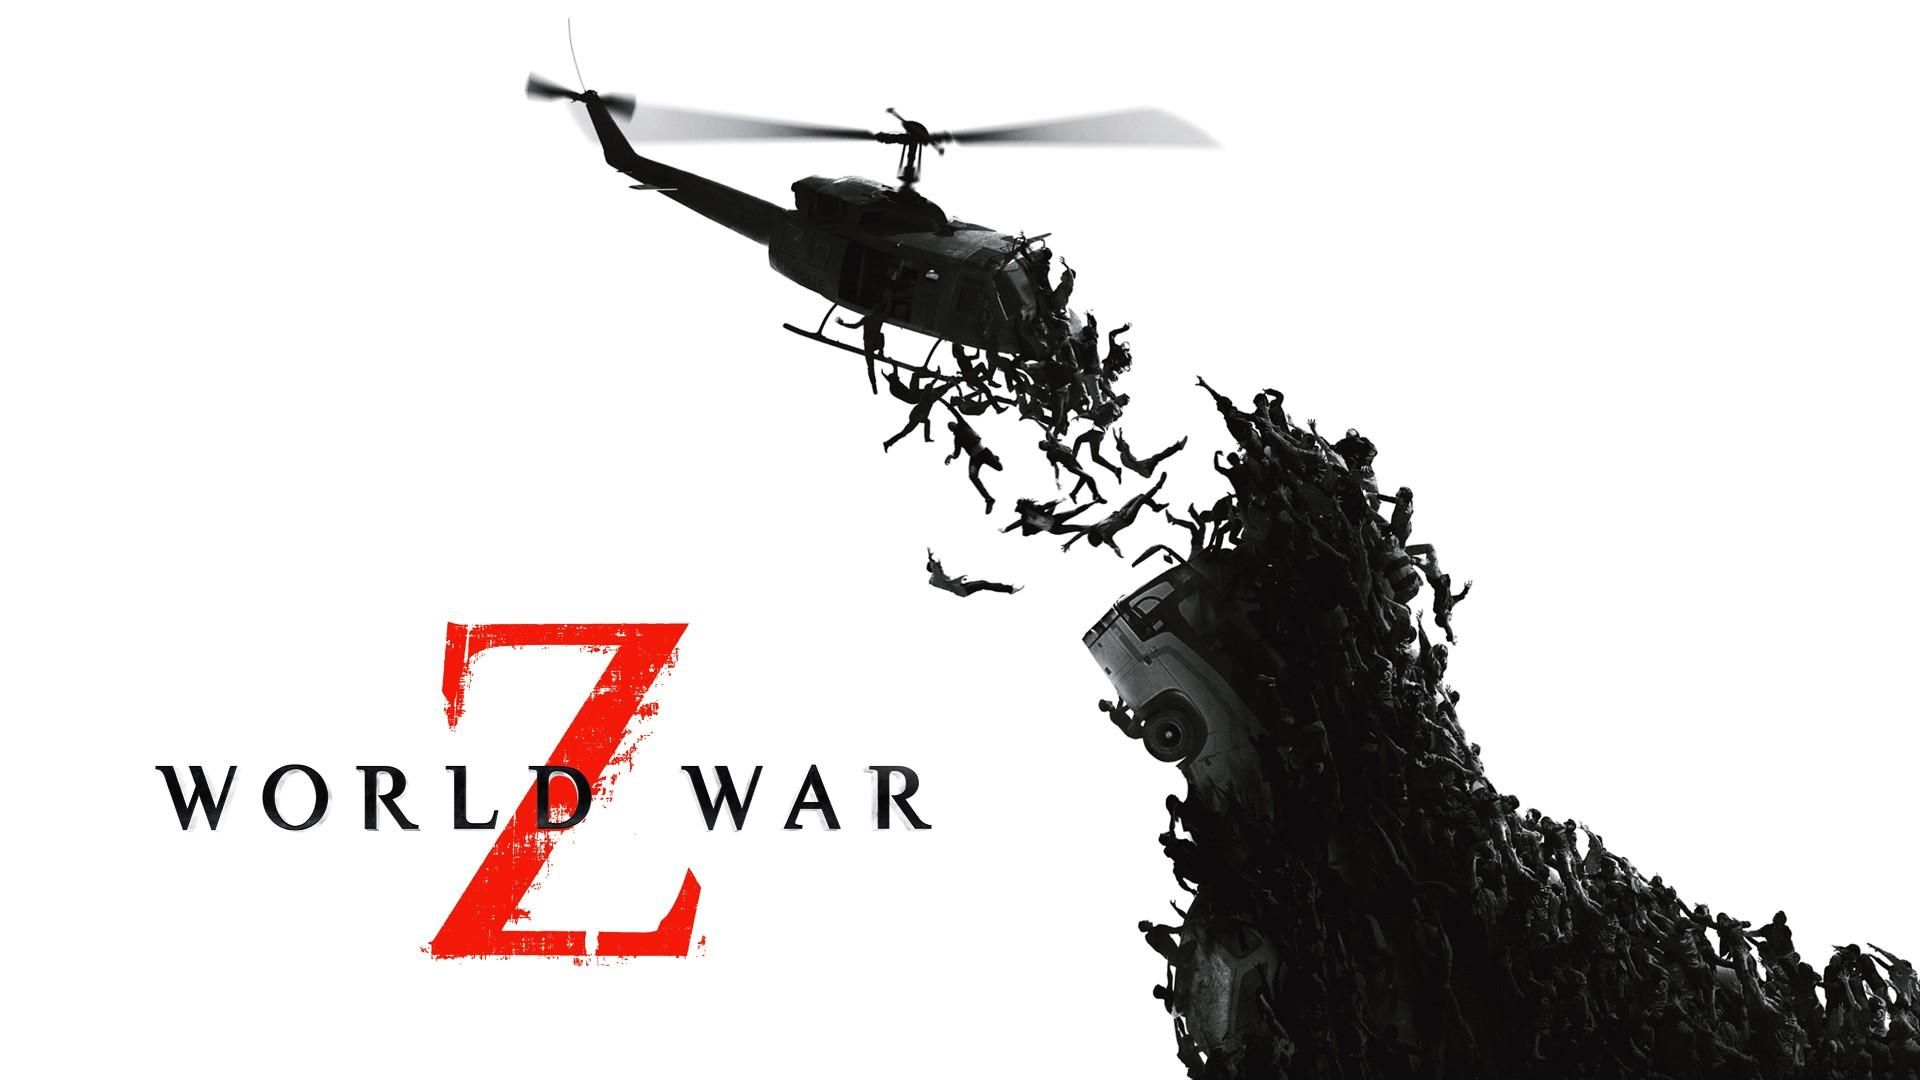 Claim World War Z now for free on games4free.eu